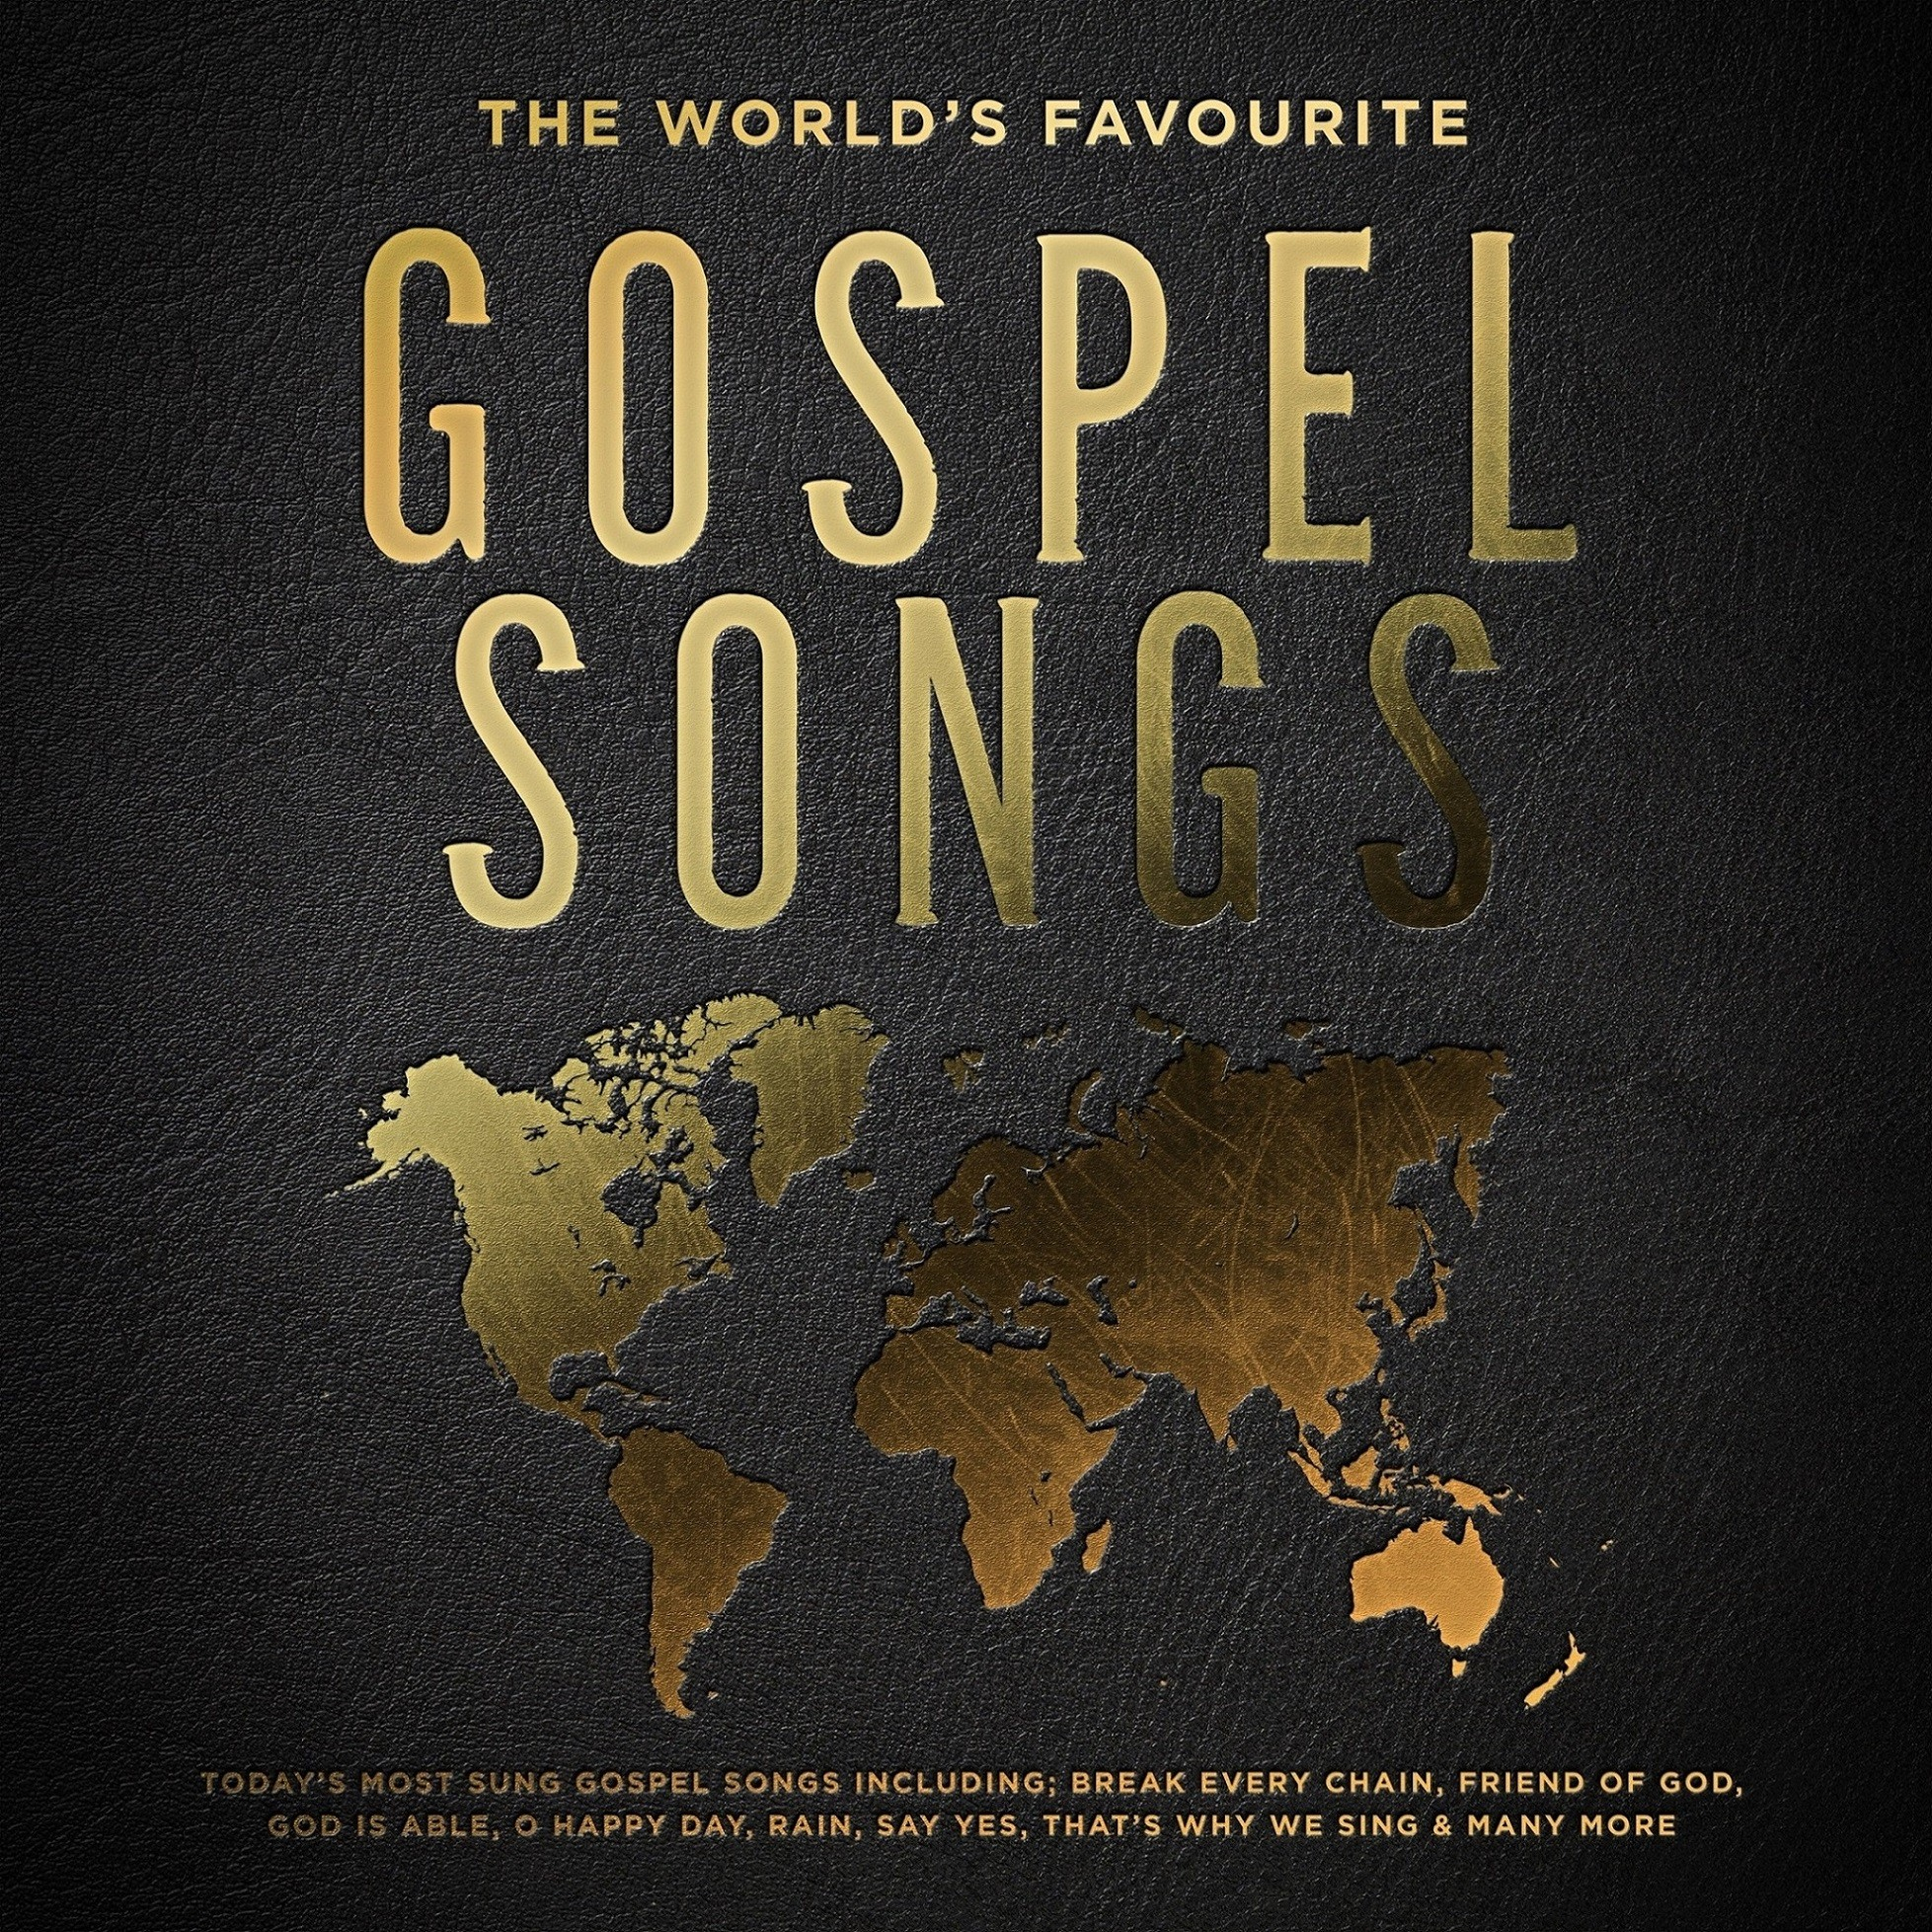 More information on The World's Favourite Gospel Songs 3 CD